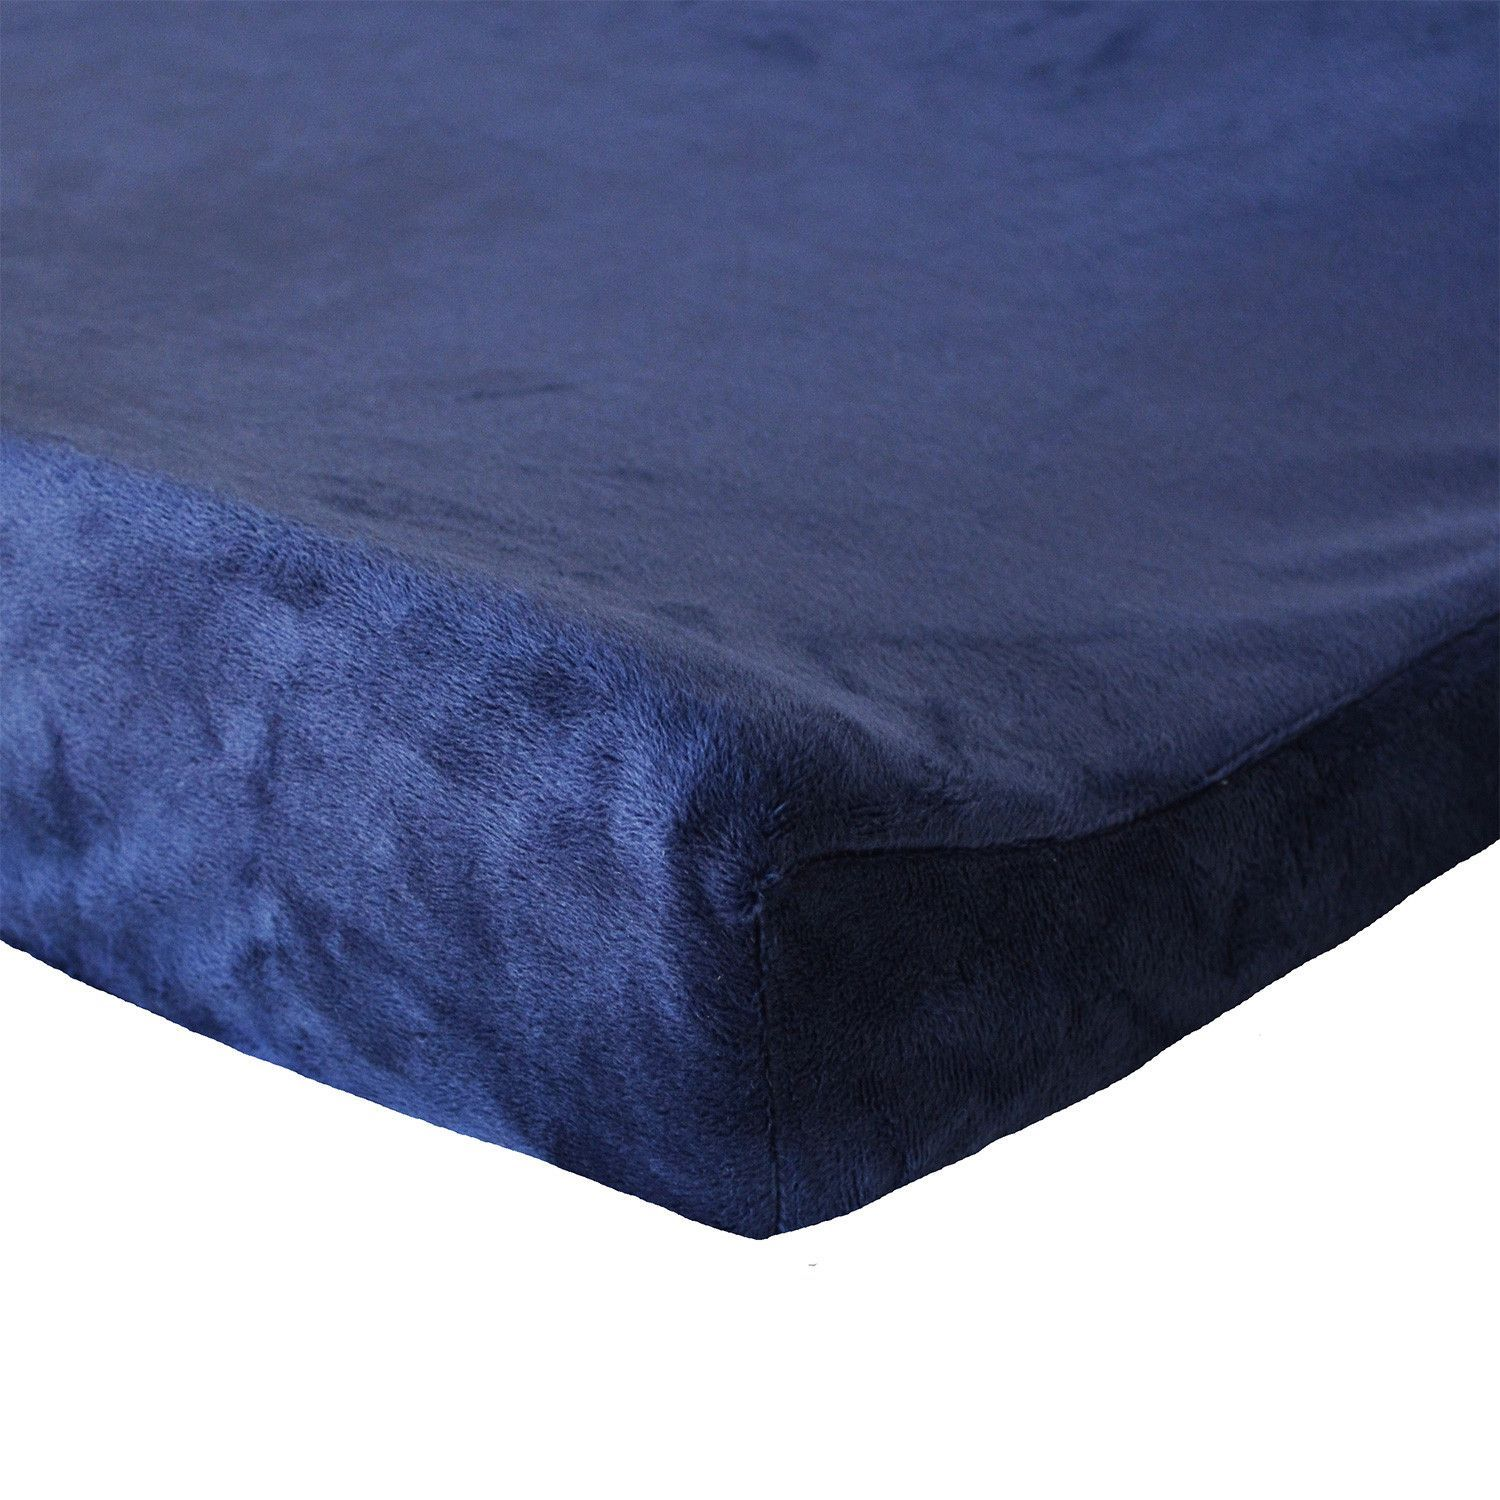 plush navy changing pad cover products pinterest products